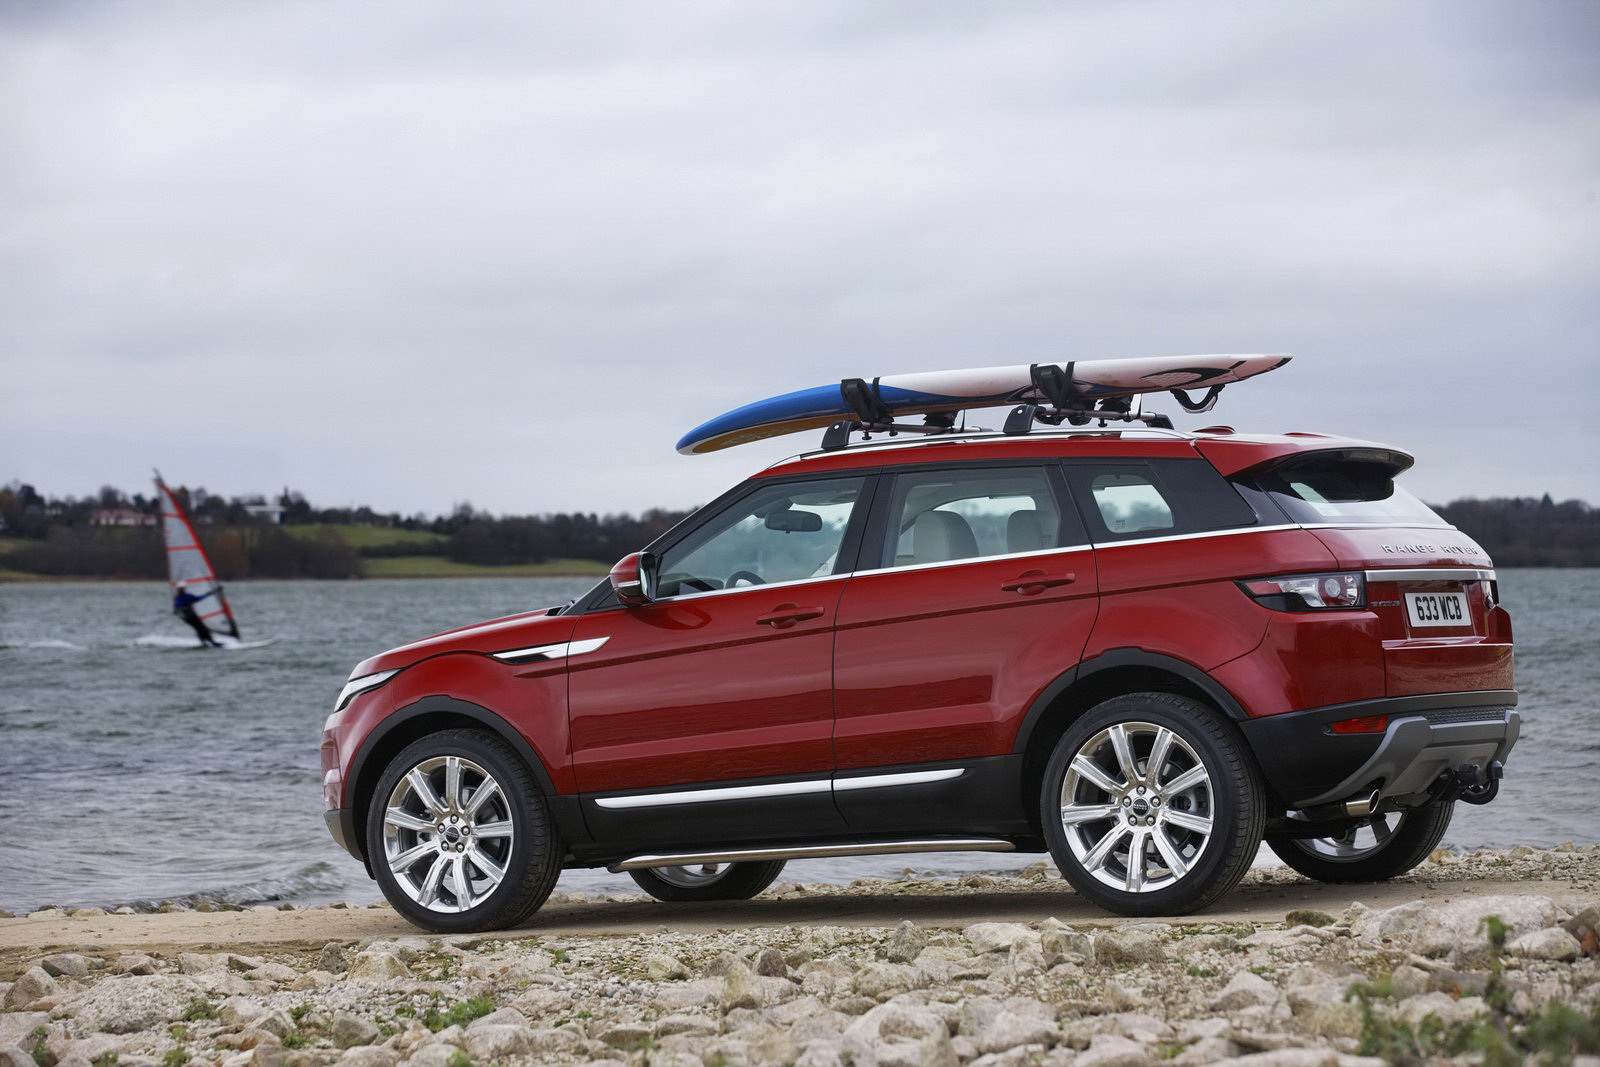 Range Rover Lifted >> EVOQUE - Range Rover Evoque tuning - SUV Tuning